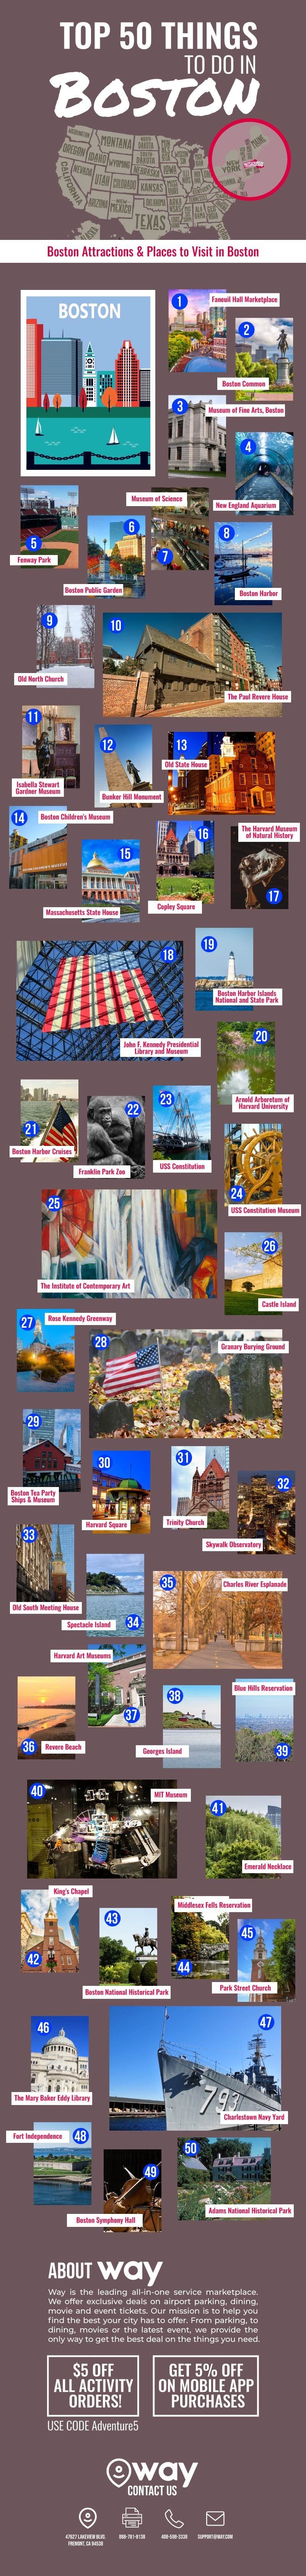 Top 50 Things to Do in Boston